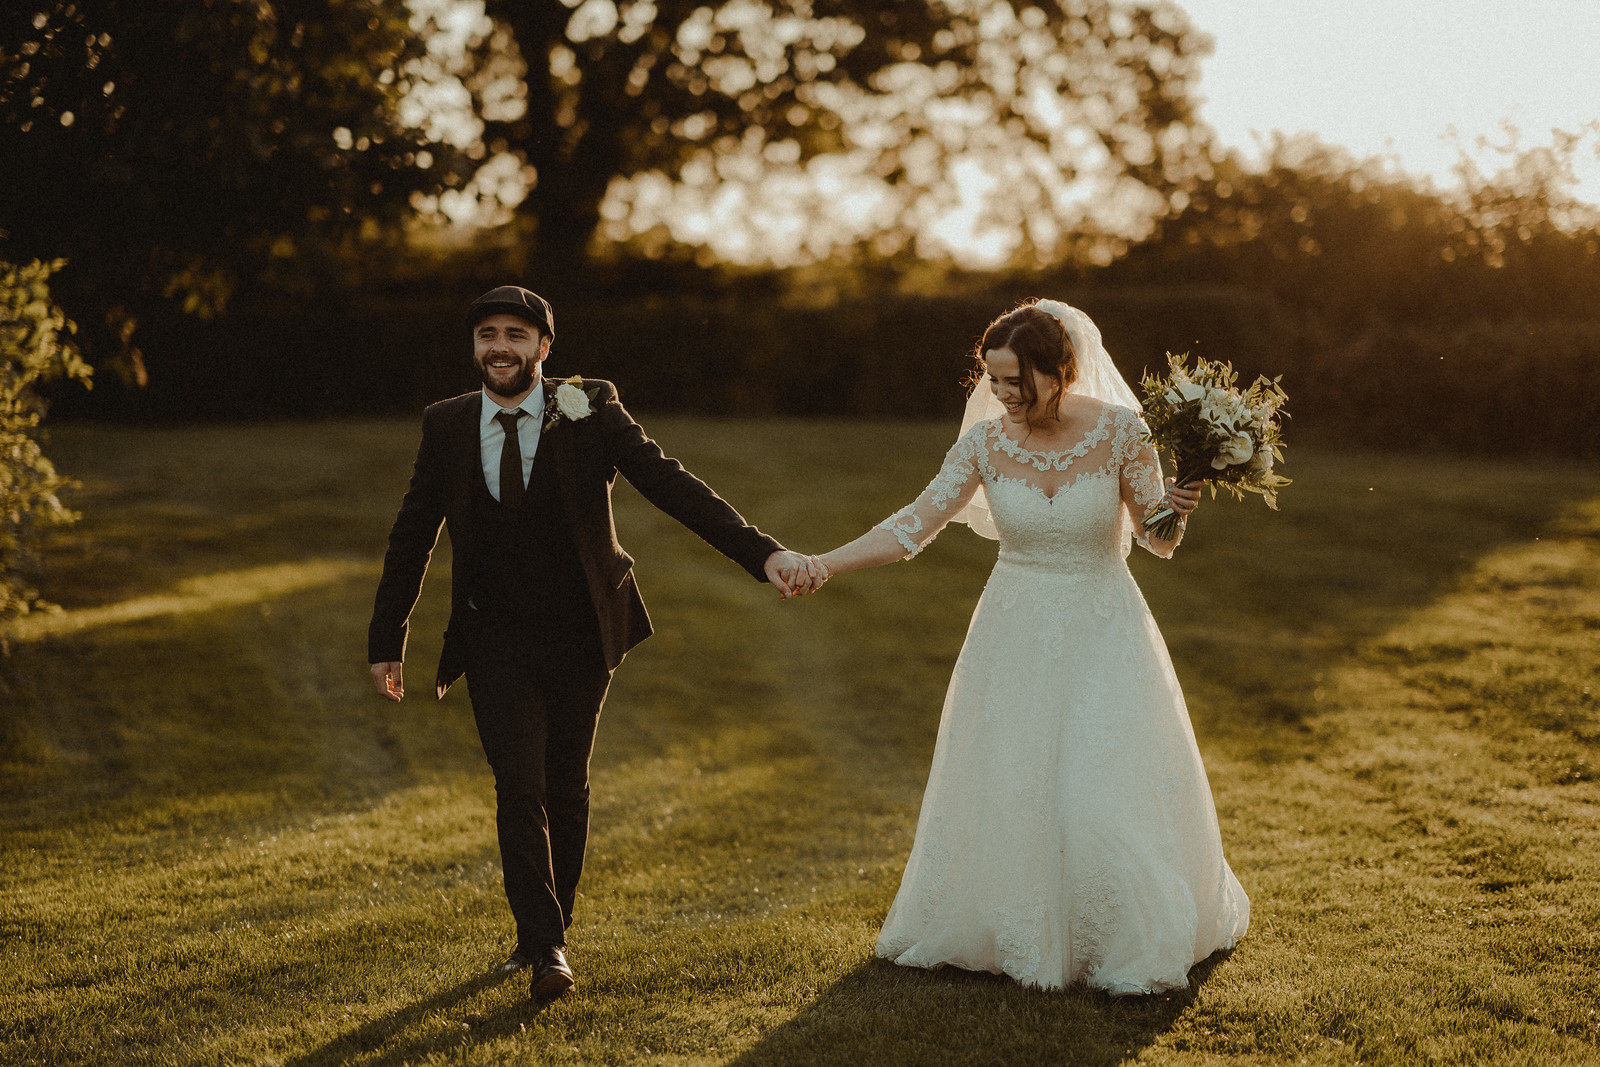 Bride and groom hold each others hands as they walk through the beauty of the venue